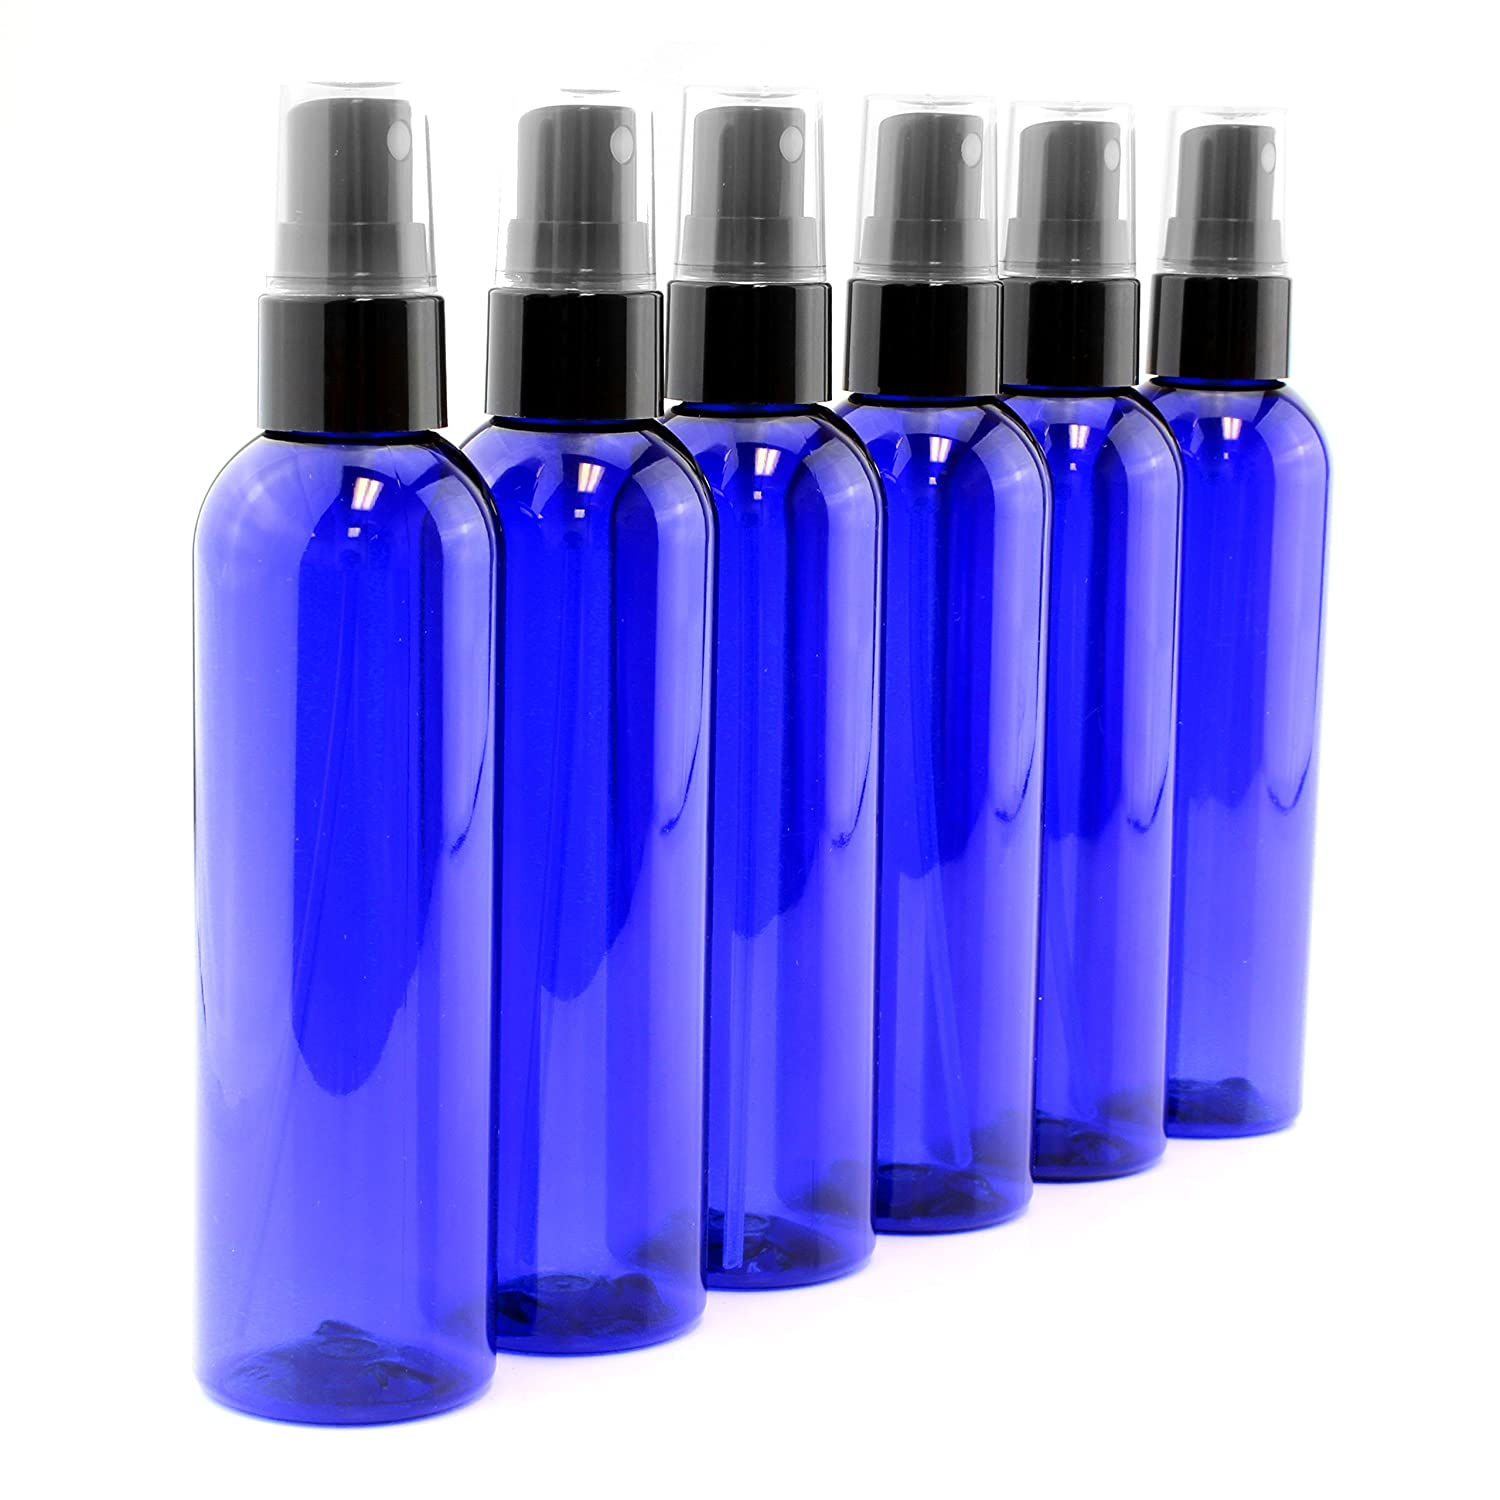 4oz Cobalt Blue Empty Plastic Refillable PET Spray Bottles w Fine Mist Atomizer Caps 6-Pack Sprayers for DIY Home Cleaning, Aromatherapy, Travel, On-The-Go Beauty Care 4 Ounce, Cobalt Blue, 6